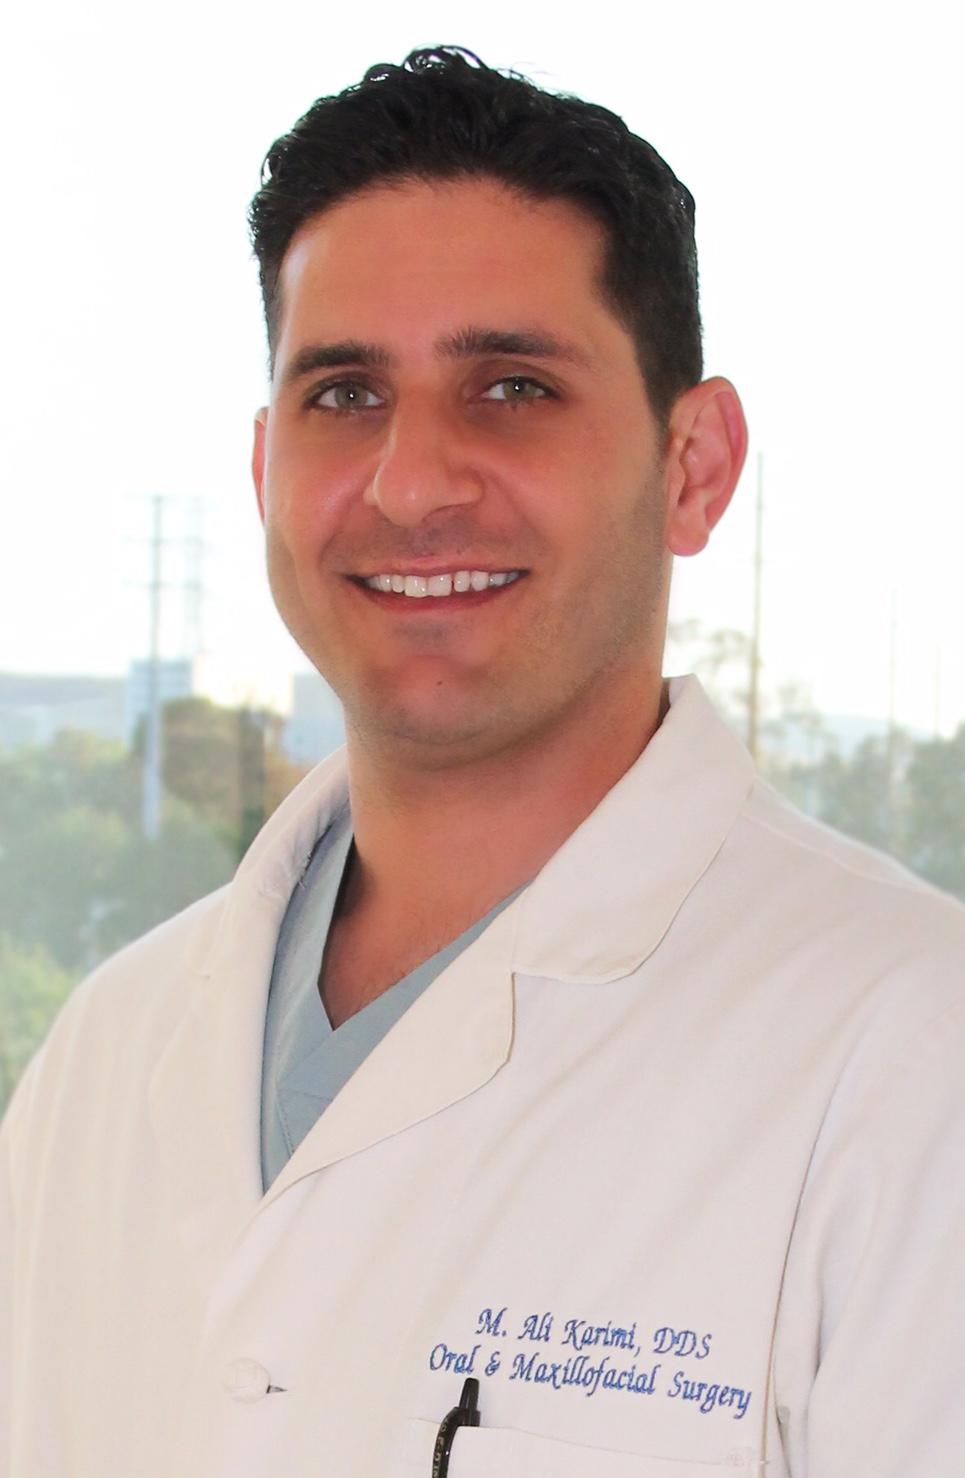 Profile Photo of Dr. Mahyar Karimi - None